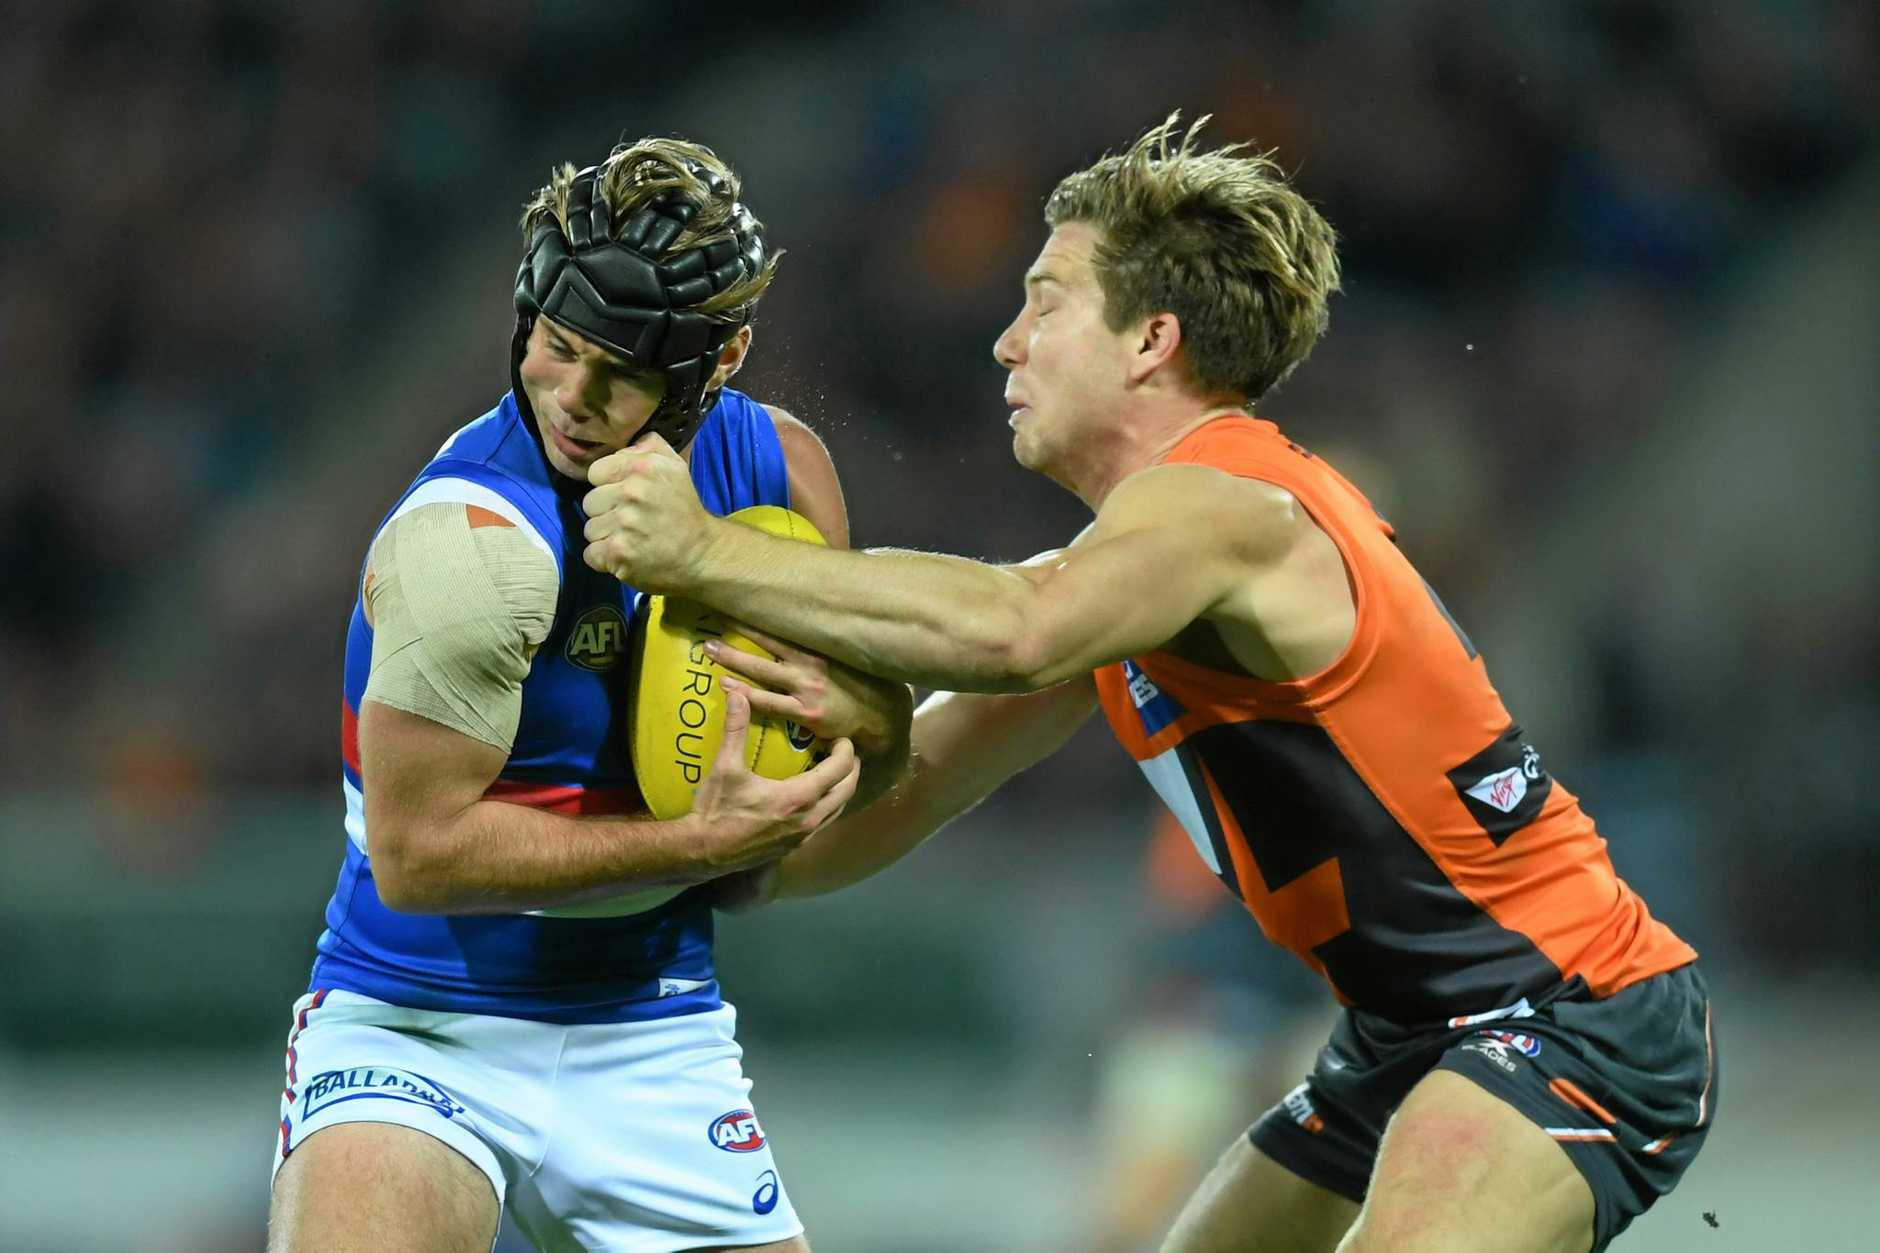 Toby Greene of the Giants (right) puts a shot on Caleb Daniel of the Bulldogs.